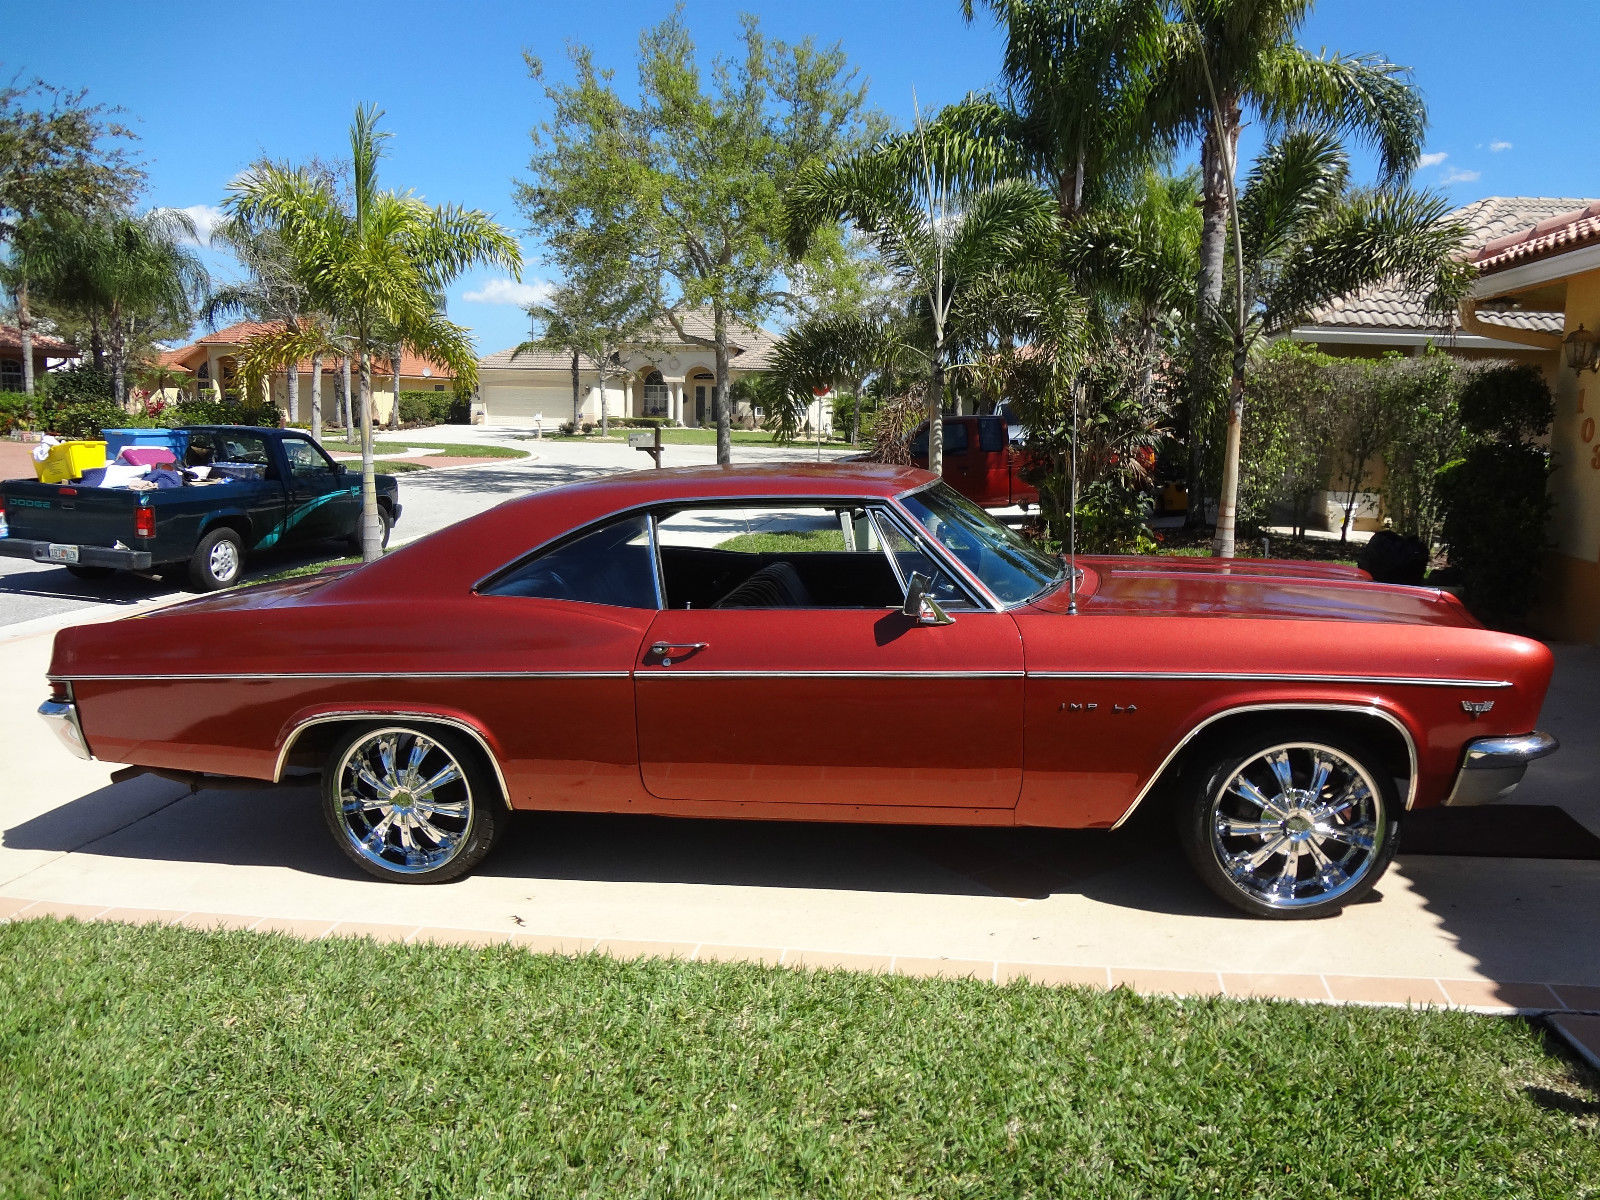 1966 chevy impala super sport two door maroon in color classic chevrolet other 1966 for sale. Black Bedroom Furniture Sets. Home Design Ideas